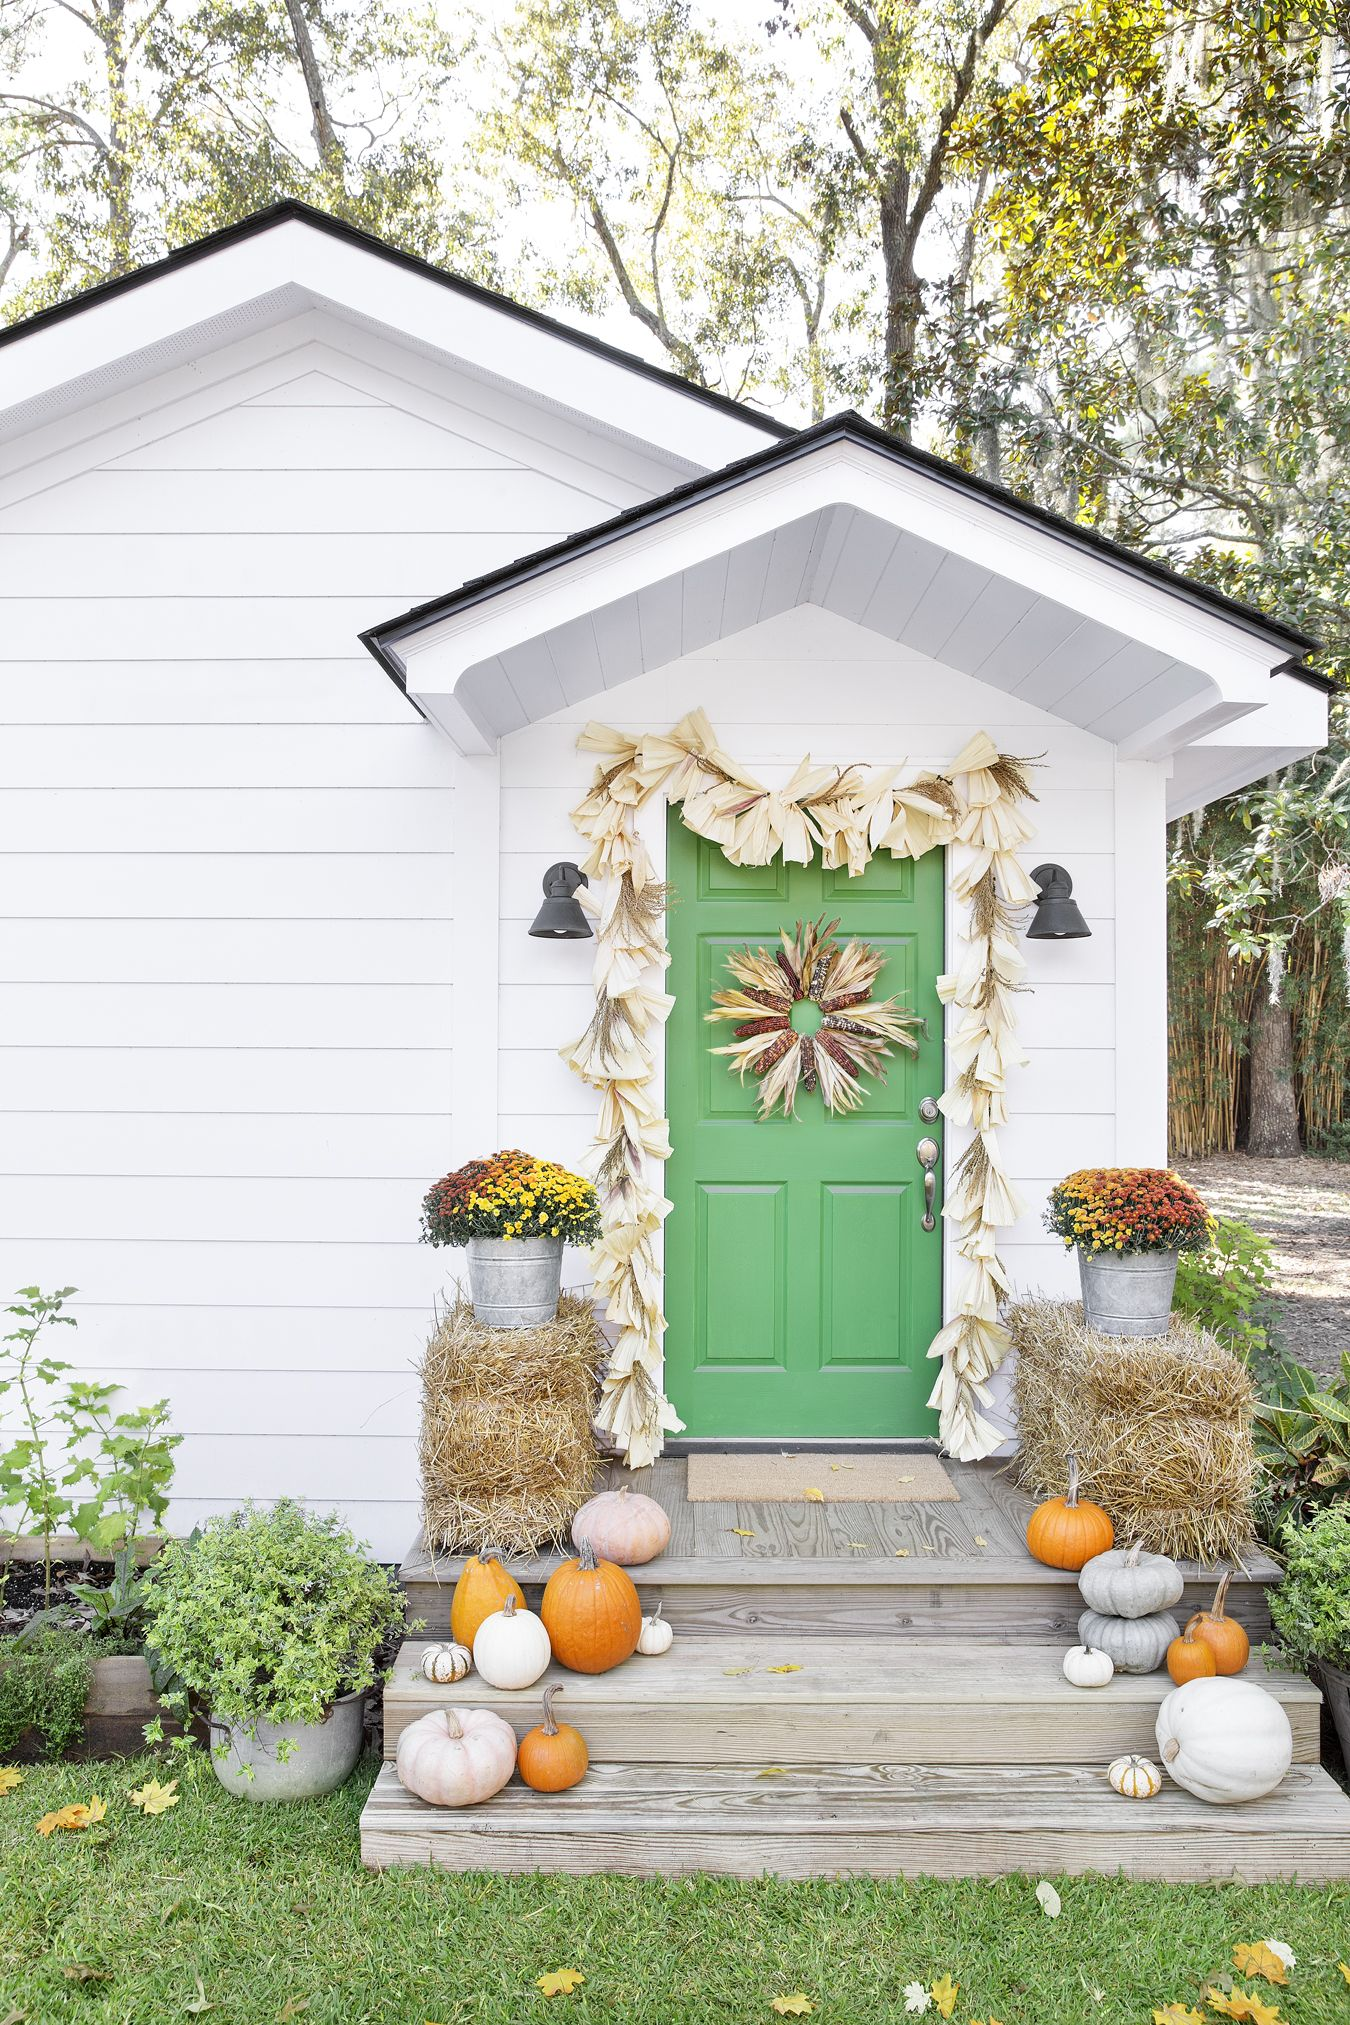 50 Easy Fall Decorating Ideas - Autumn Decor Tips to Try